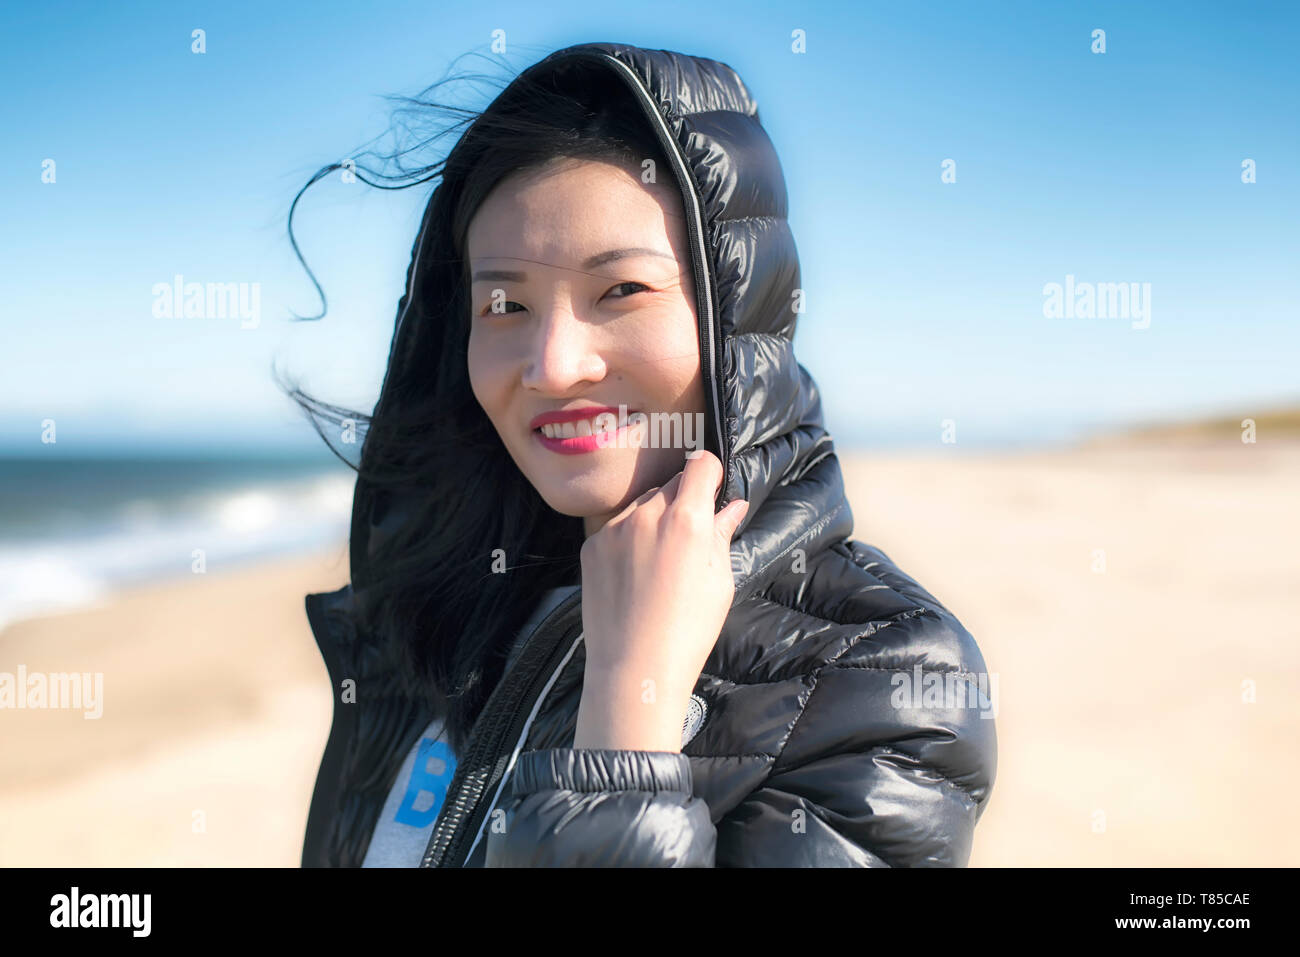 A Chinese woman smiling outside on a windy day on the Cape Cod National Seashore in Massachusetts. - Stock Image